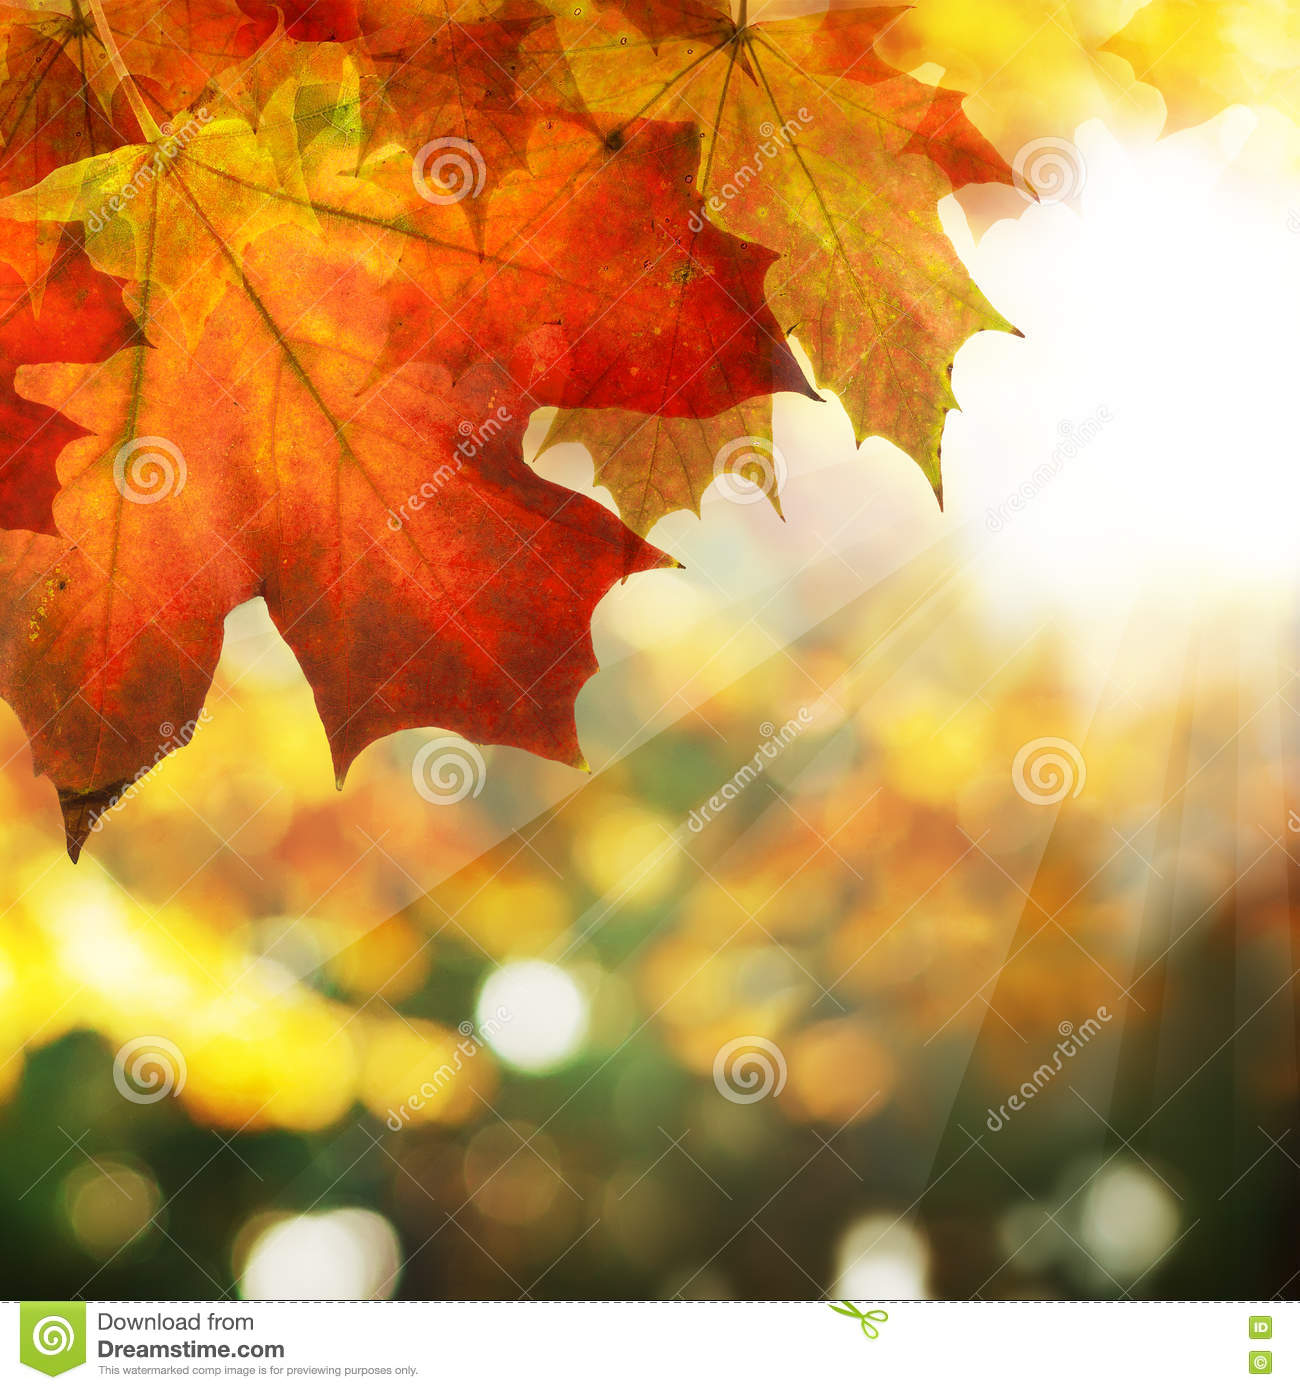 Autumn Border Of Maple Leaves On Abstract Bokeh Background